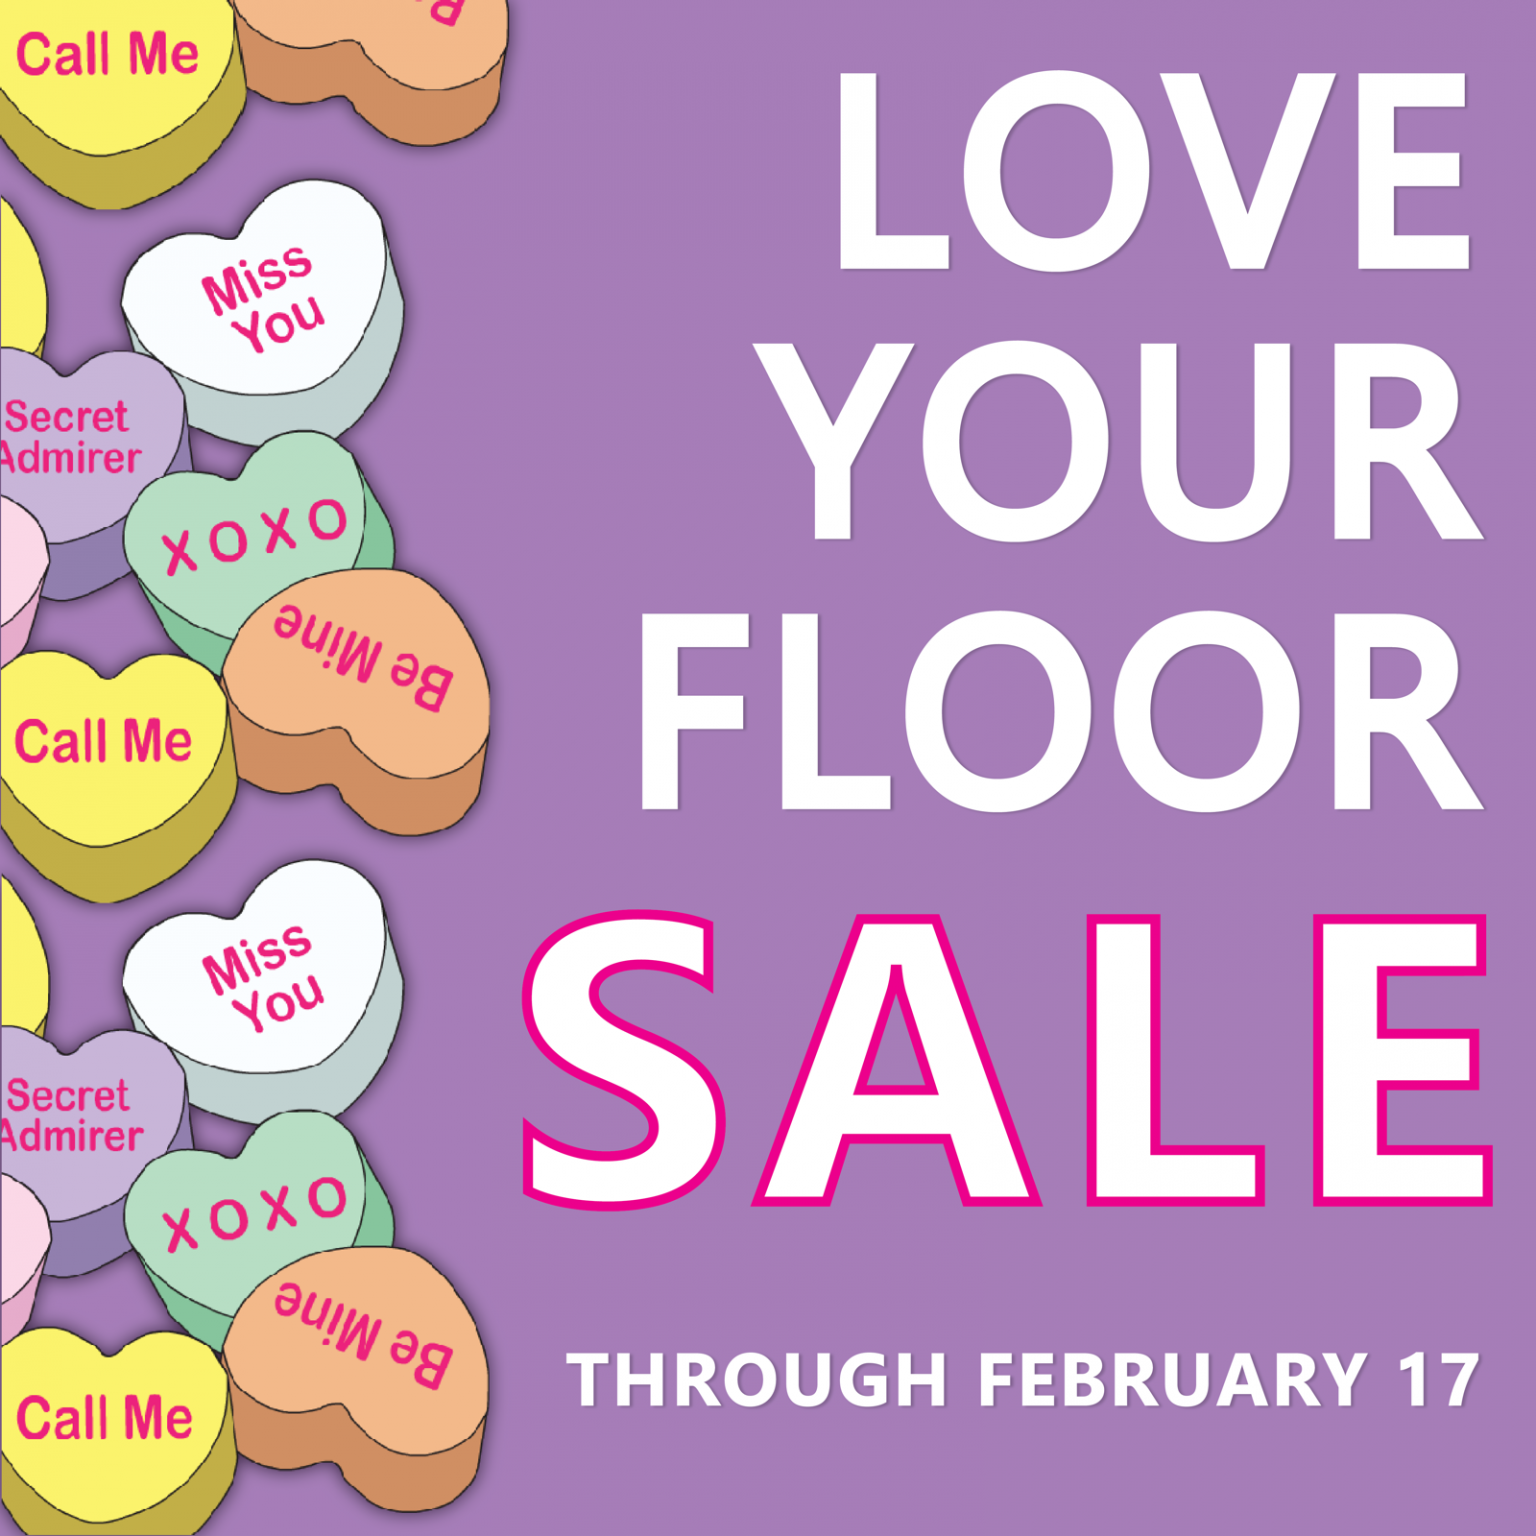 Love your floor sale | Staff Carpet